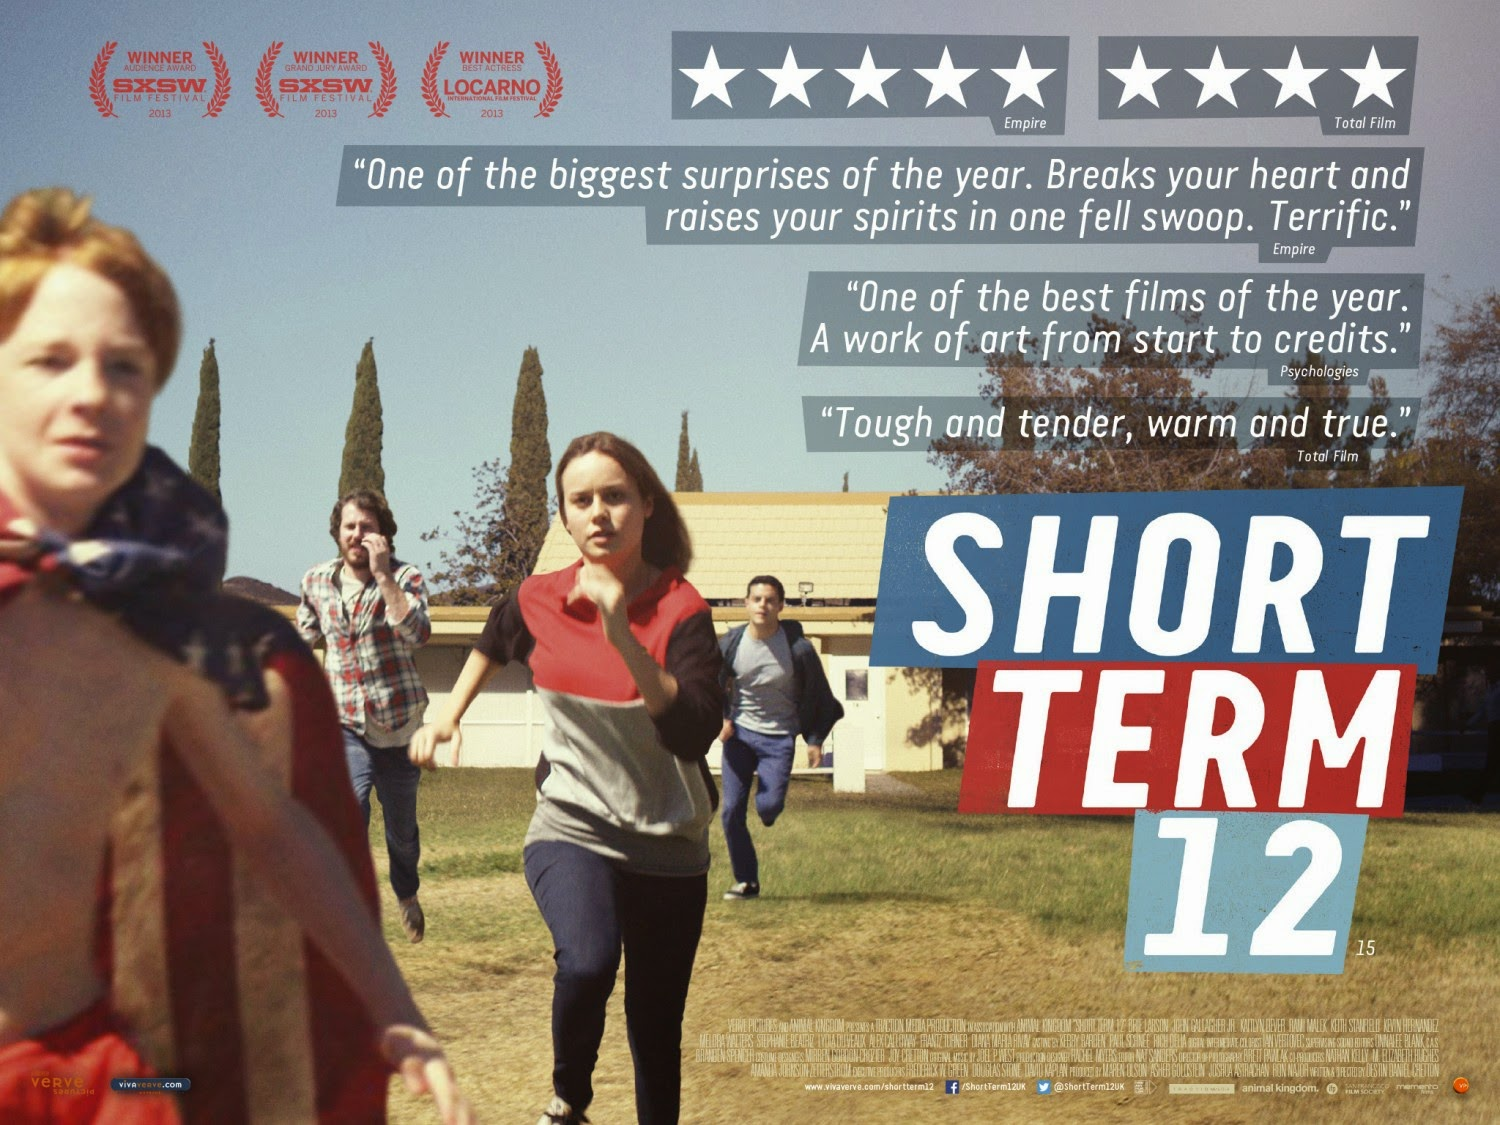 Short Term 12 starring Brie Larson is one of the best Hollywood films since 1990 (Mostly 2000)